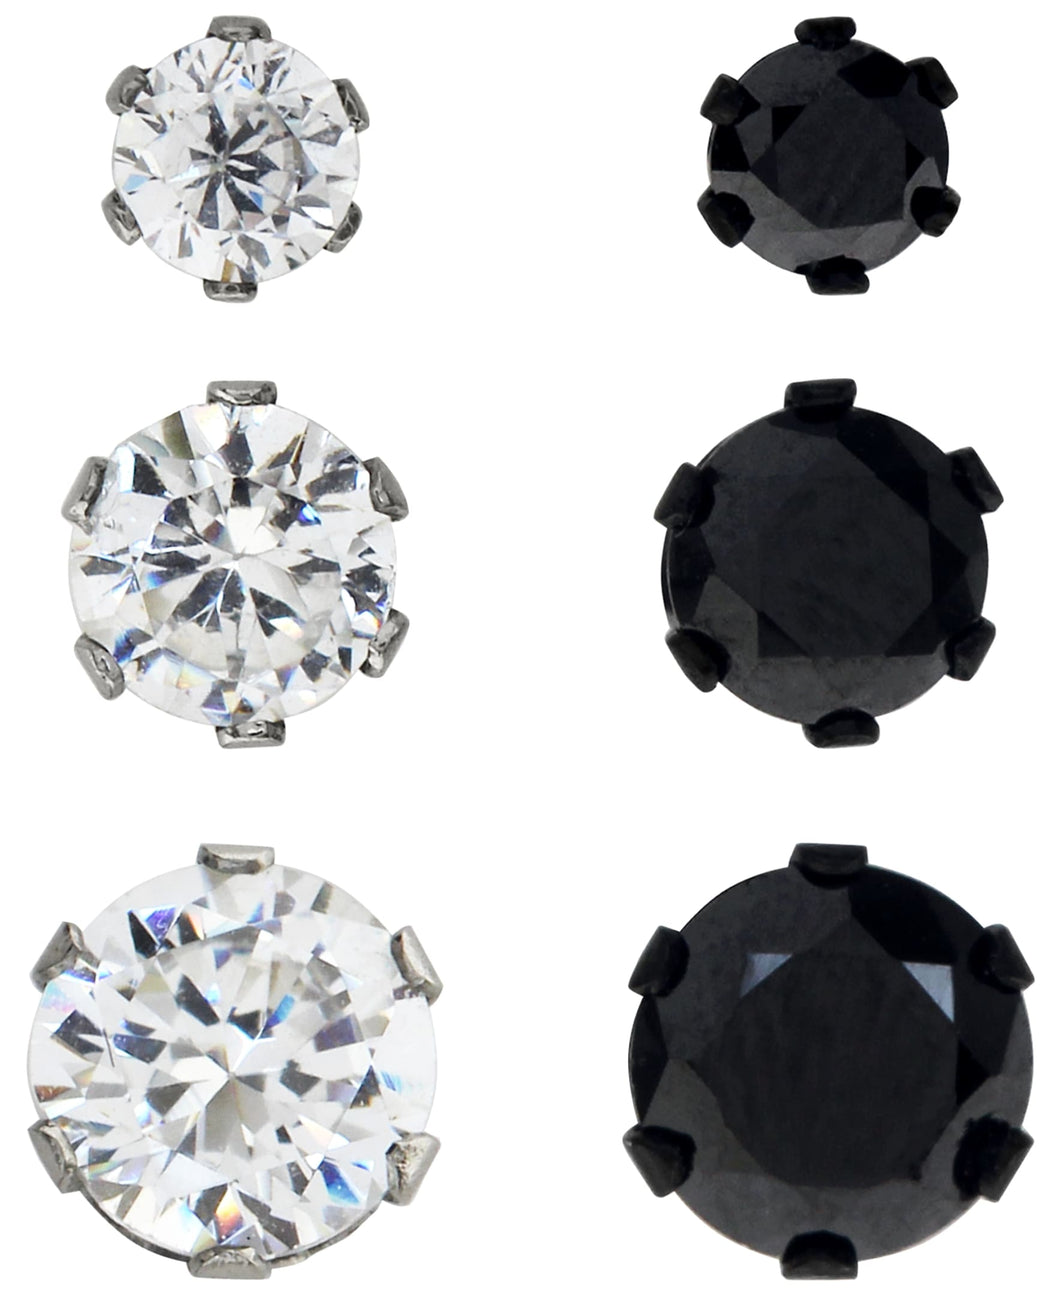 Sutton Stainless Steel Two-Tone Cubic Zirconia Stud Earrings Set of 3 Pairs